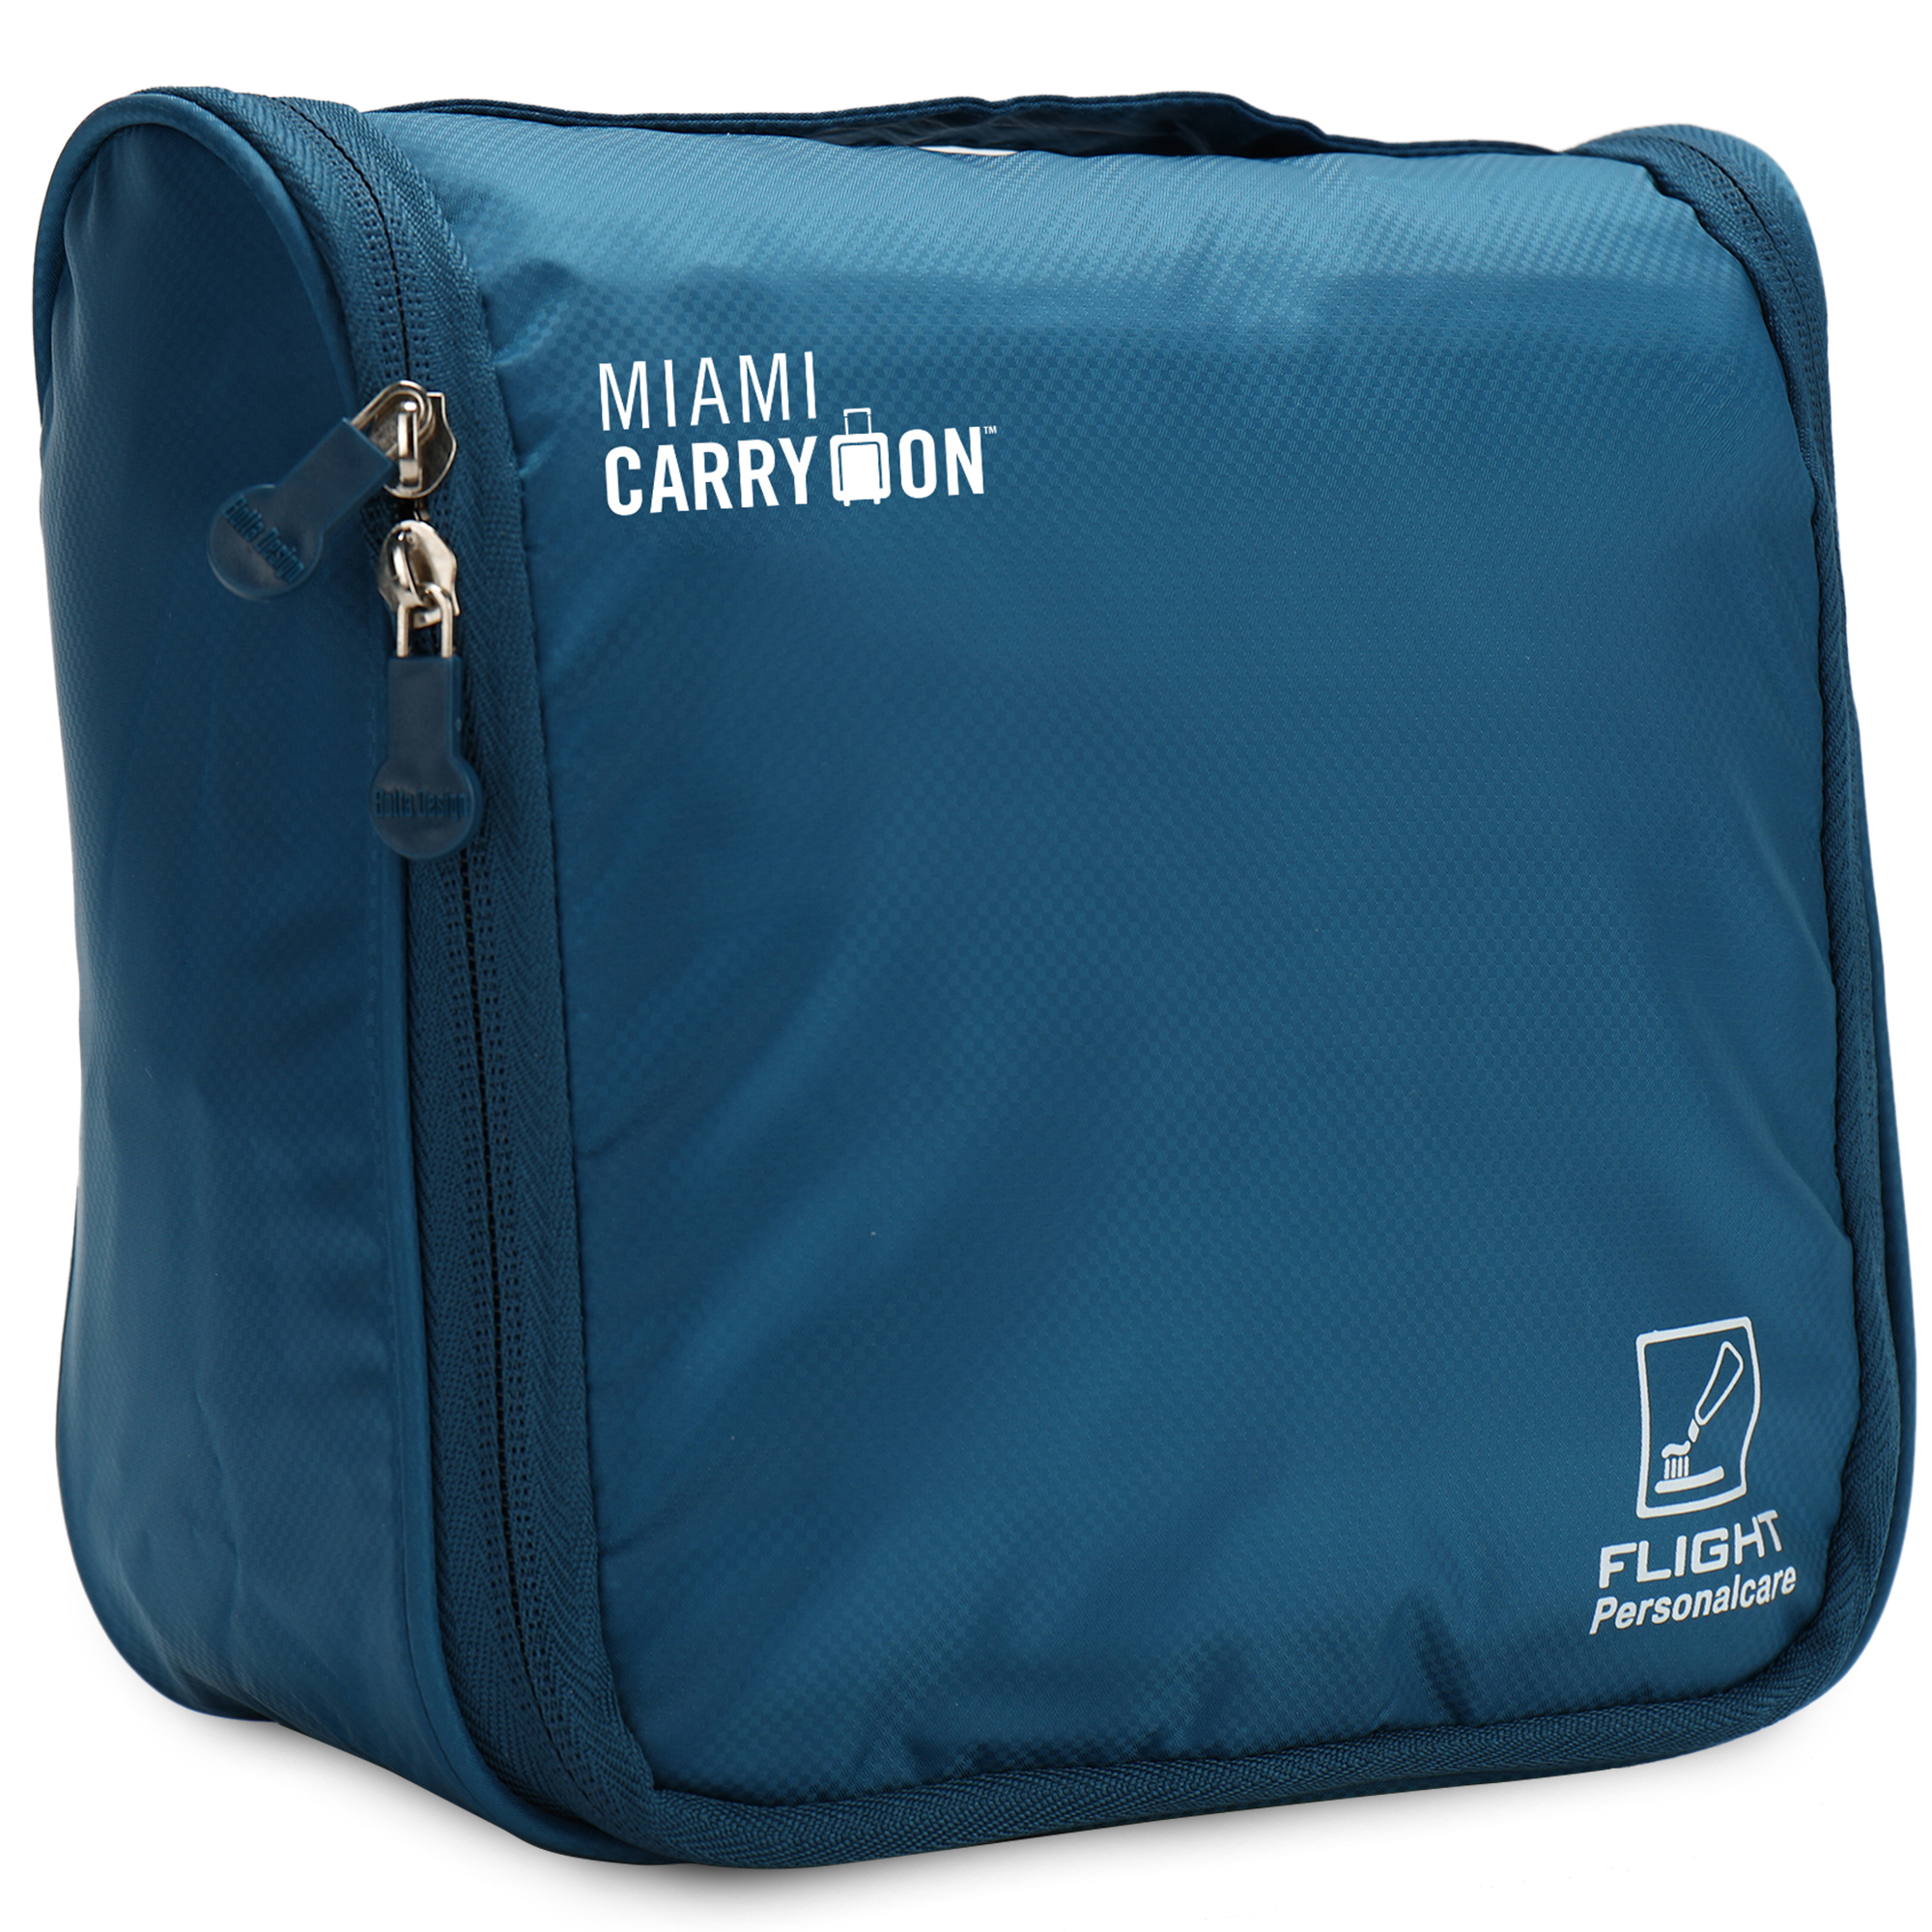 miami carryon water resistant travel smart hanging cosmetic bag navy blue